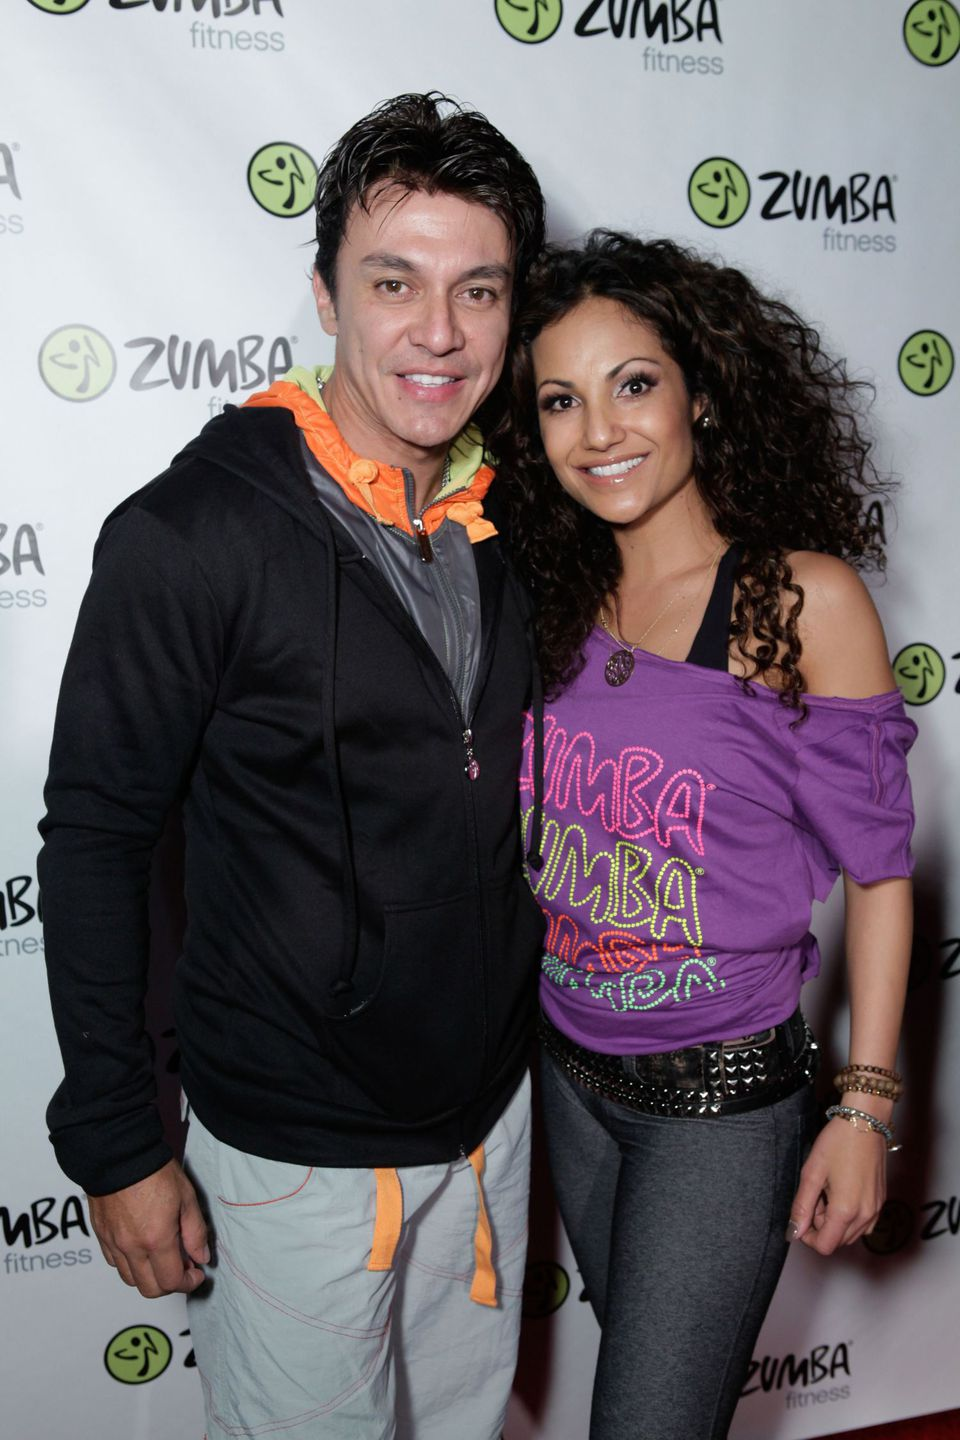 A picture of Beto Perez and Gina Grant